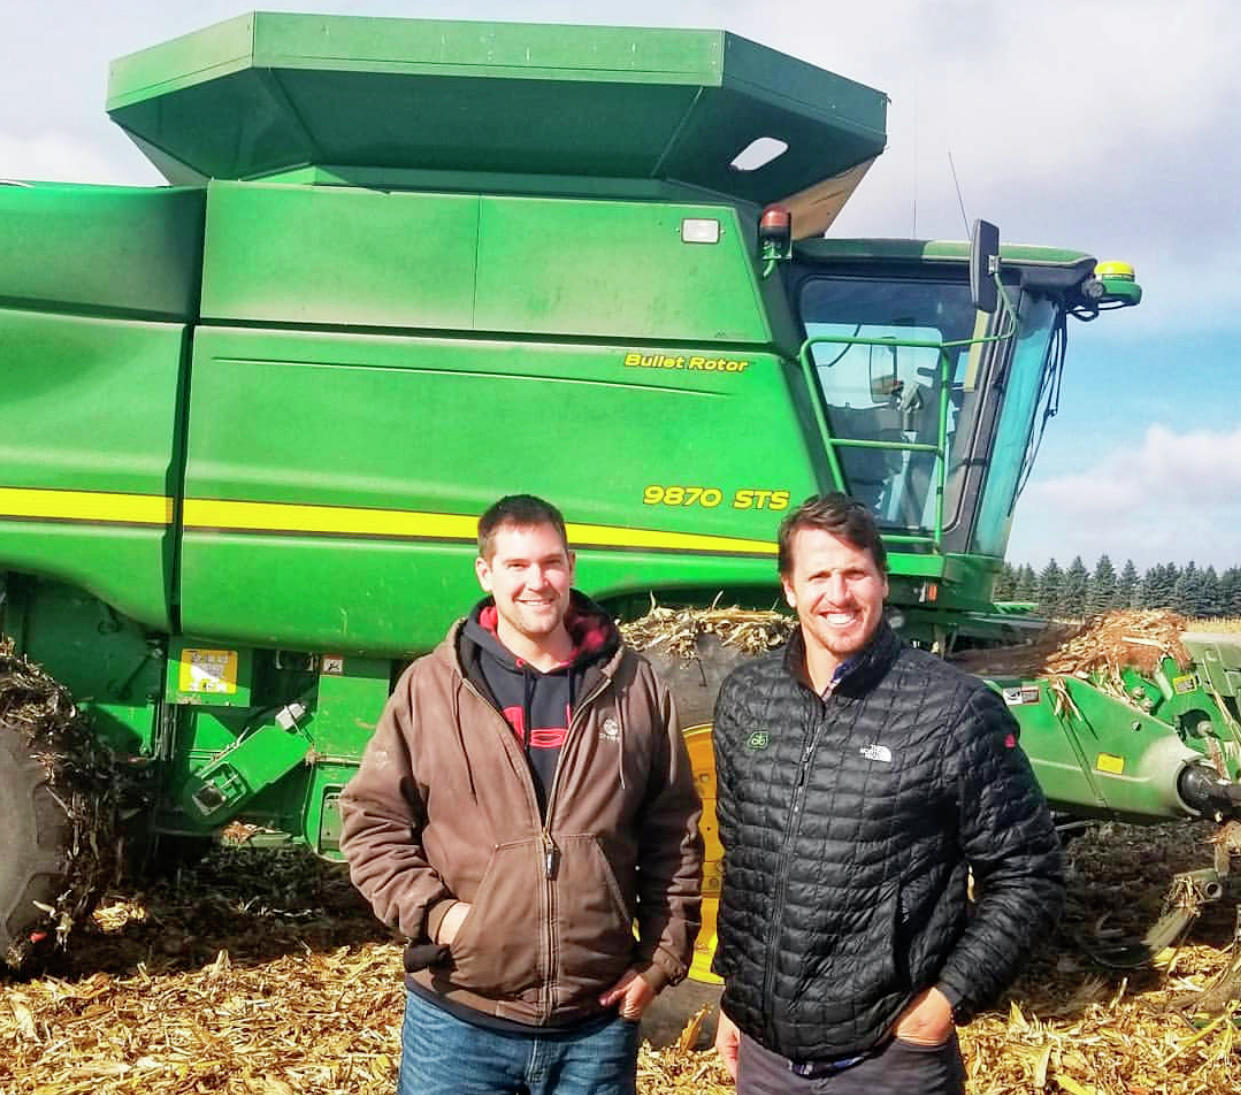 Zach Johnson (left) and former Minnesota Viking Chad Greenway (right) pose in front of a tractor in the middle of shooting a video for Johnson's YouTube channel. (Contributed)